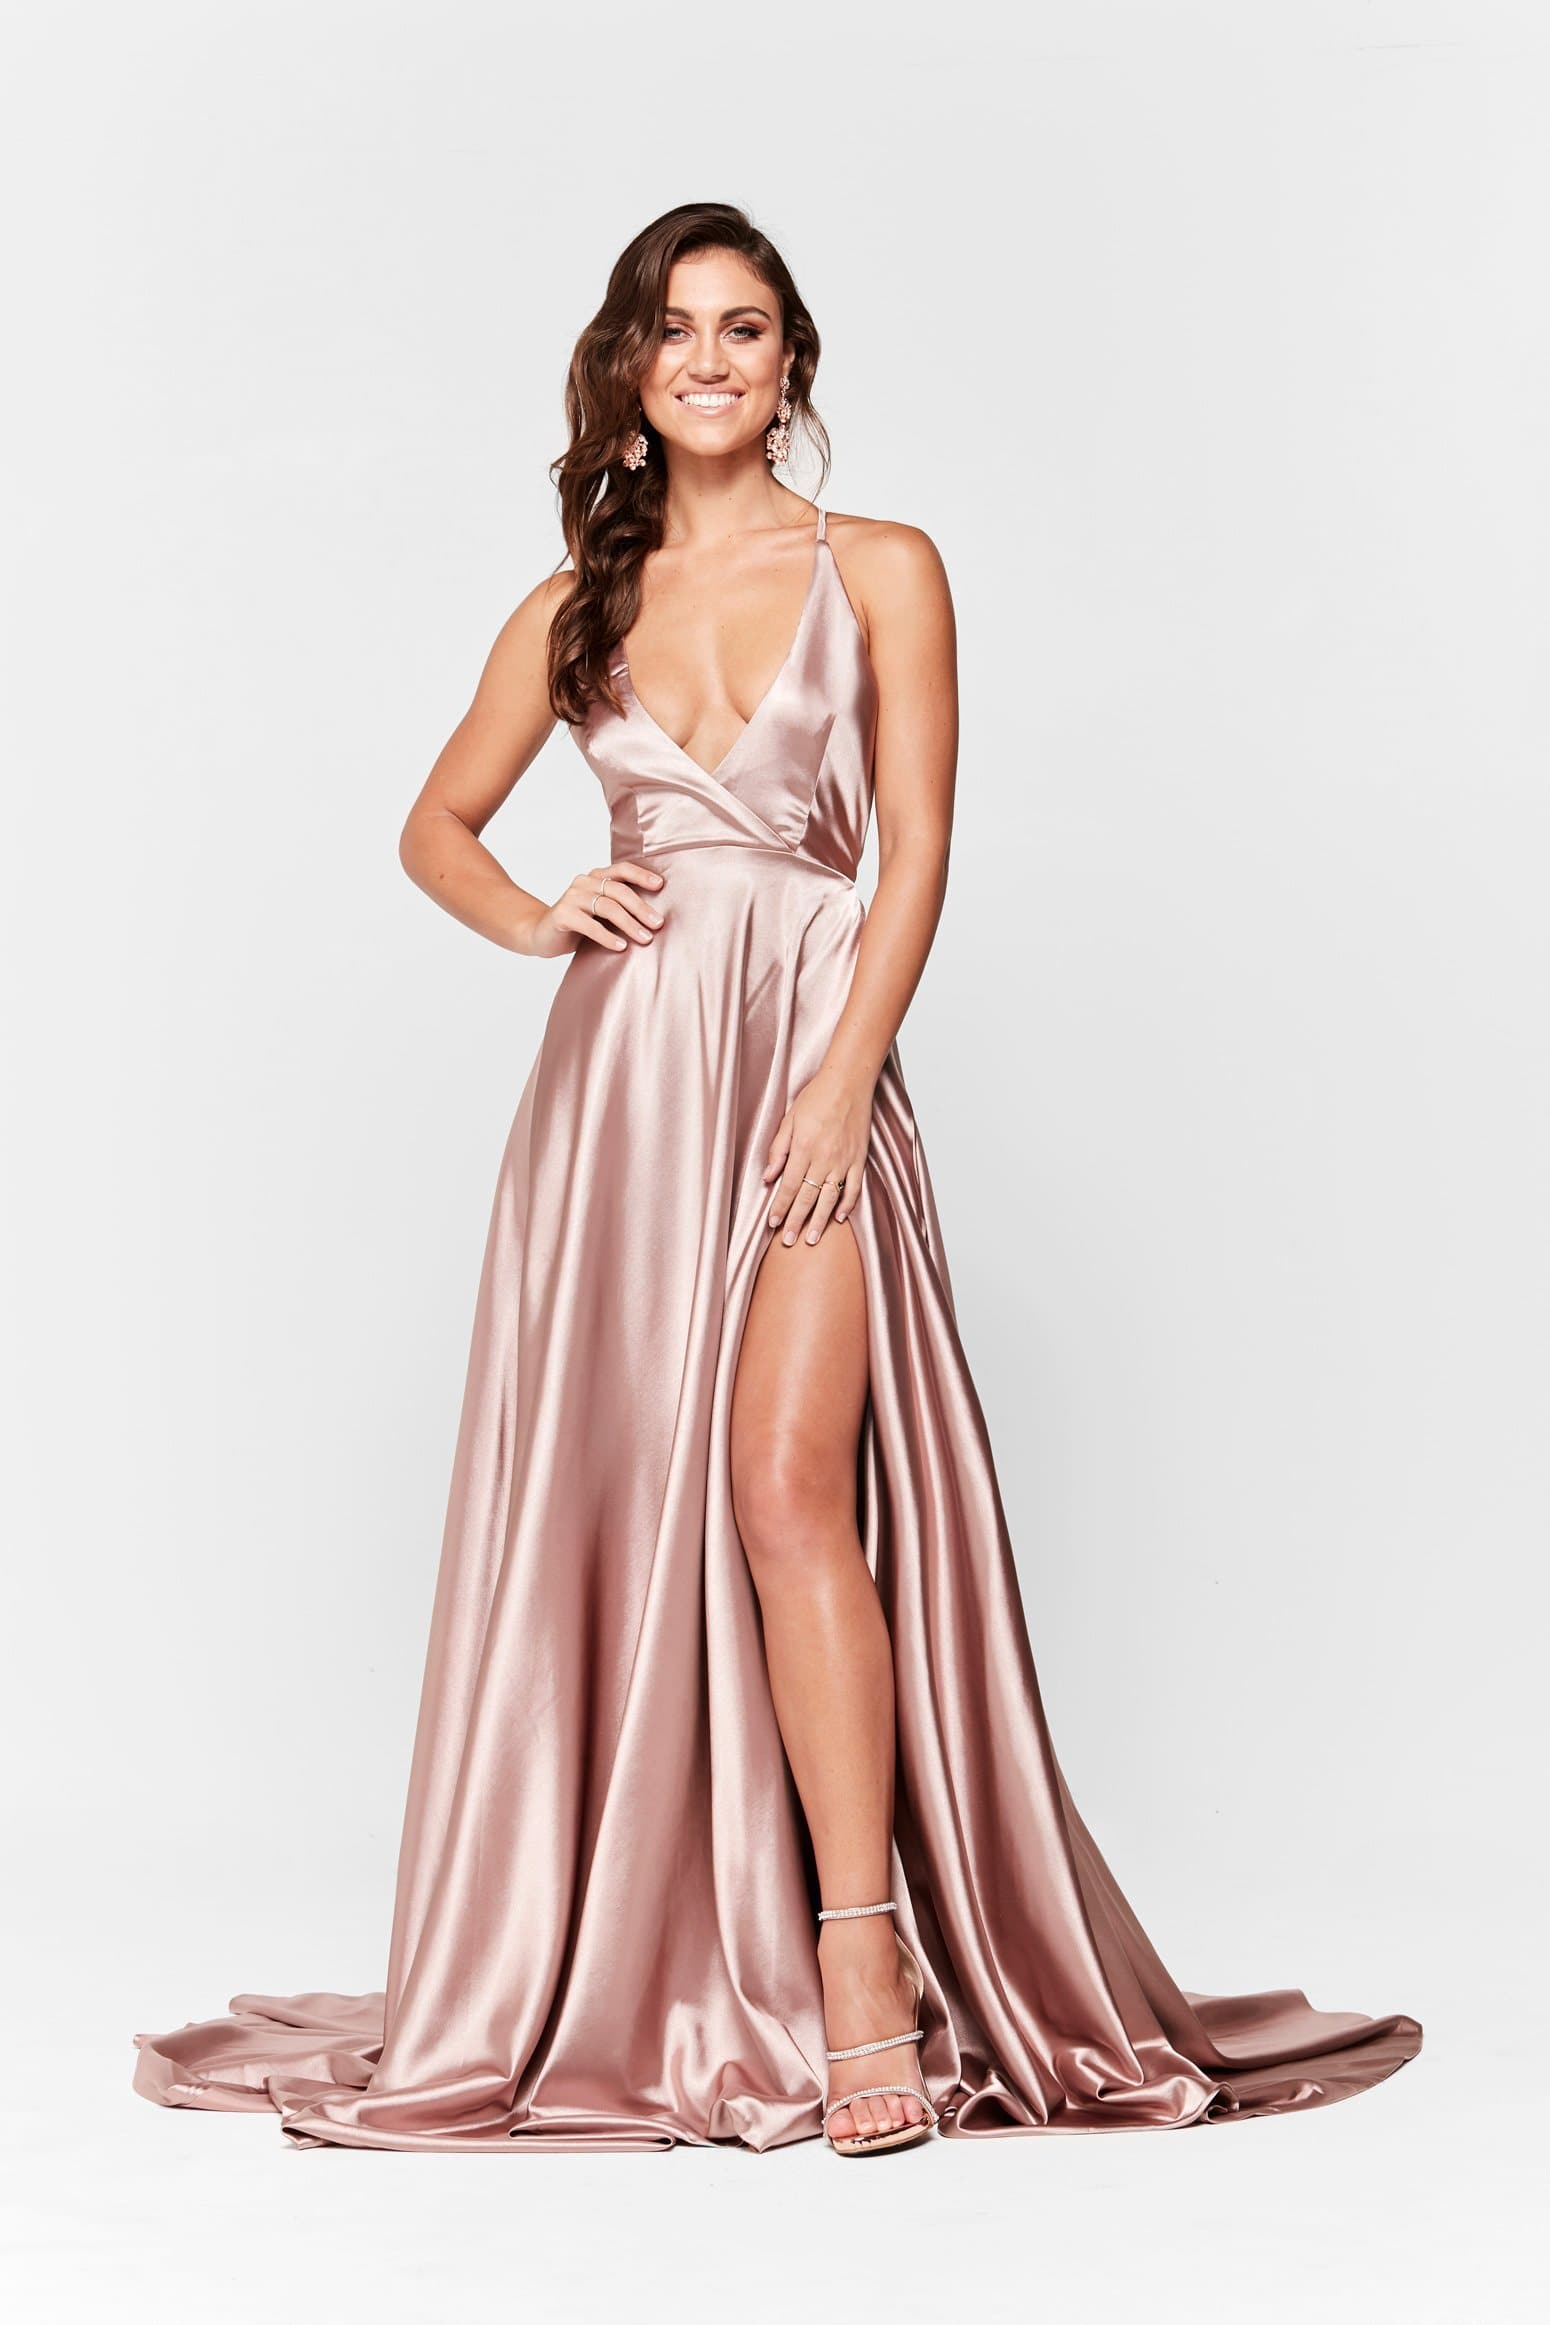 A&N Dimah - Mauve Satin Gown with Lace Up Back and Side Slit